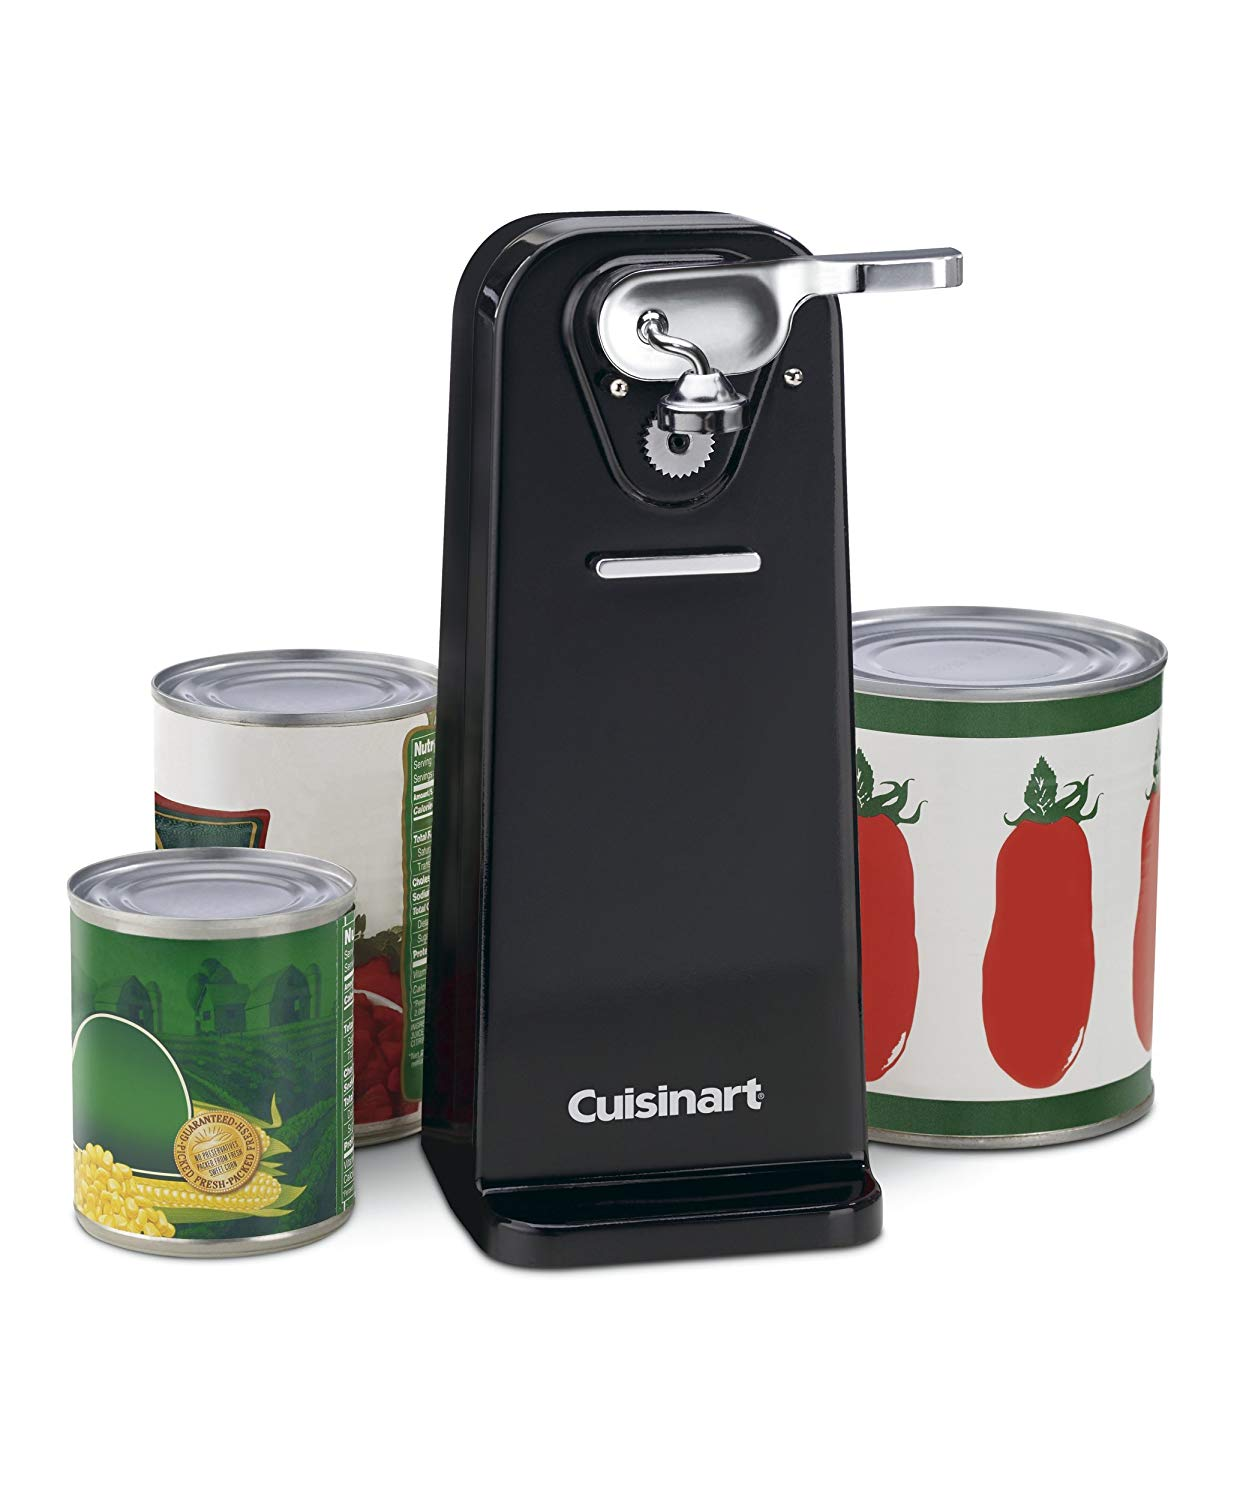 The CCO-50BKN Deluxe Electric Can Opener from Cuisinart